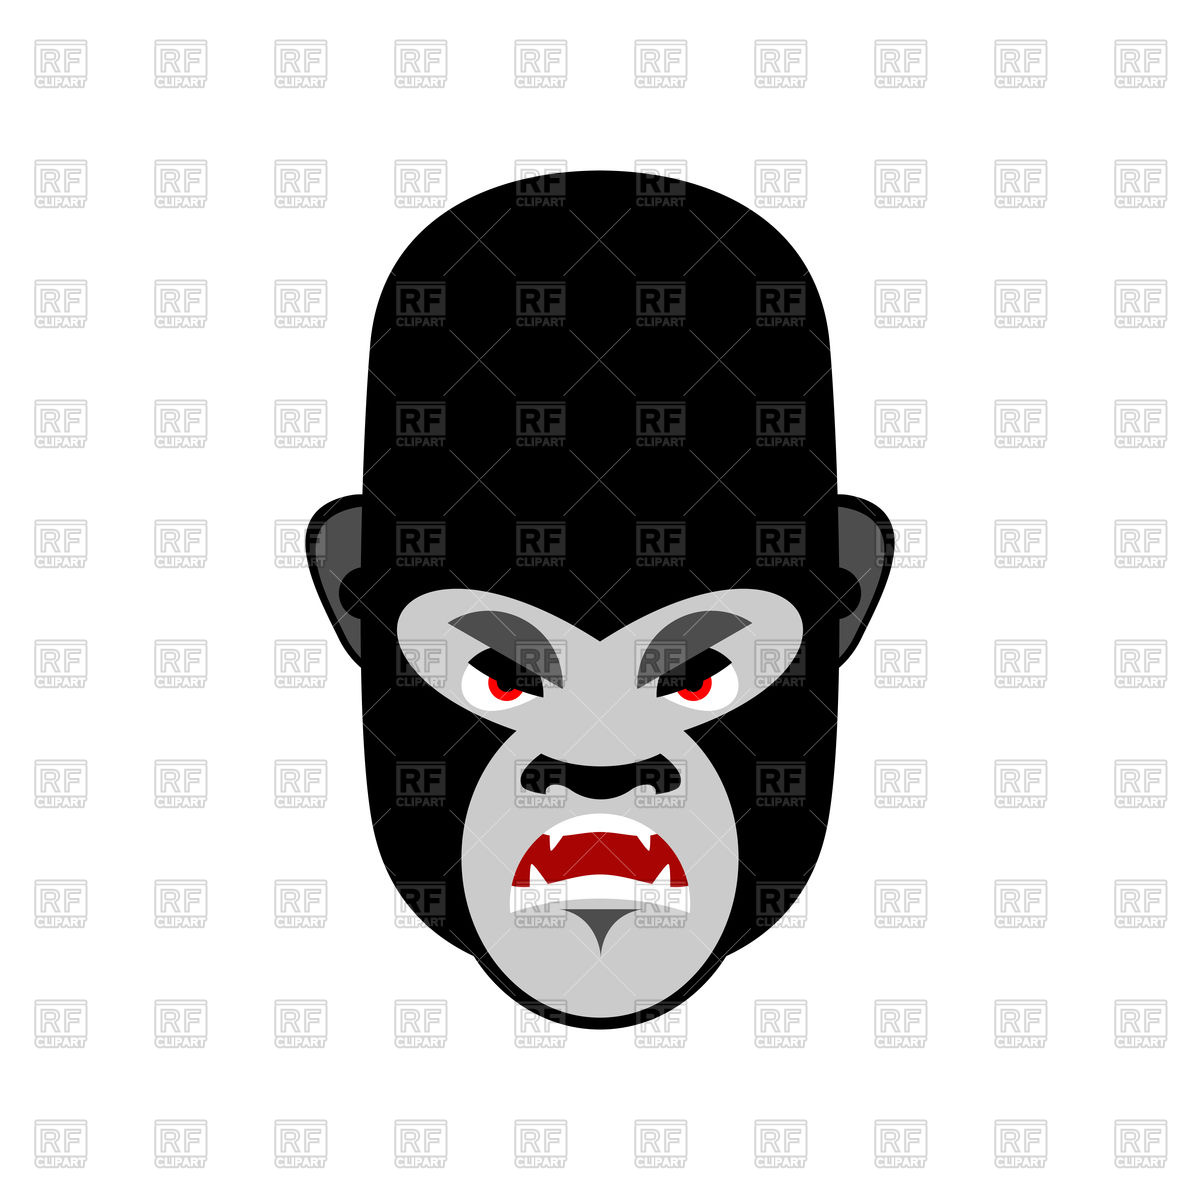 1200x1200 Angry gorilla head